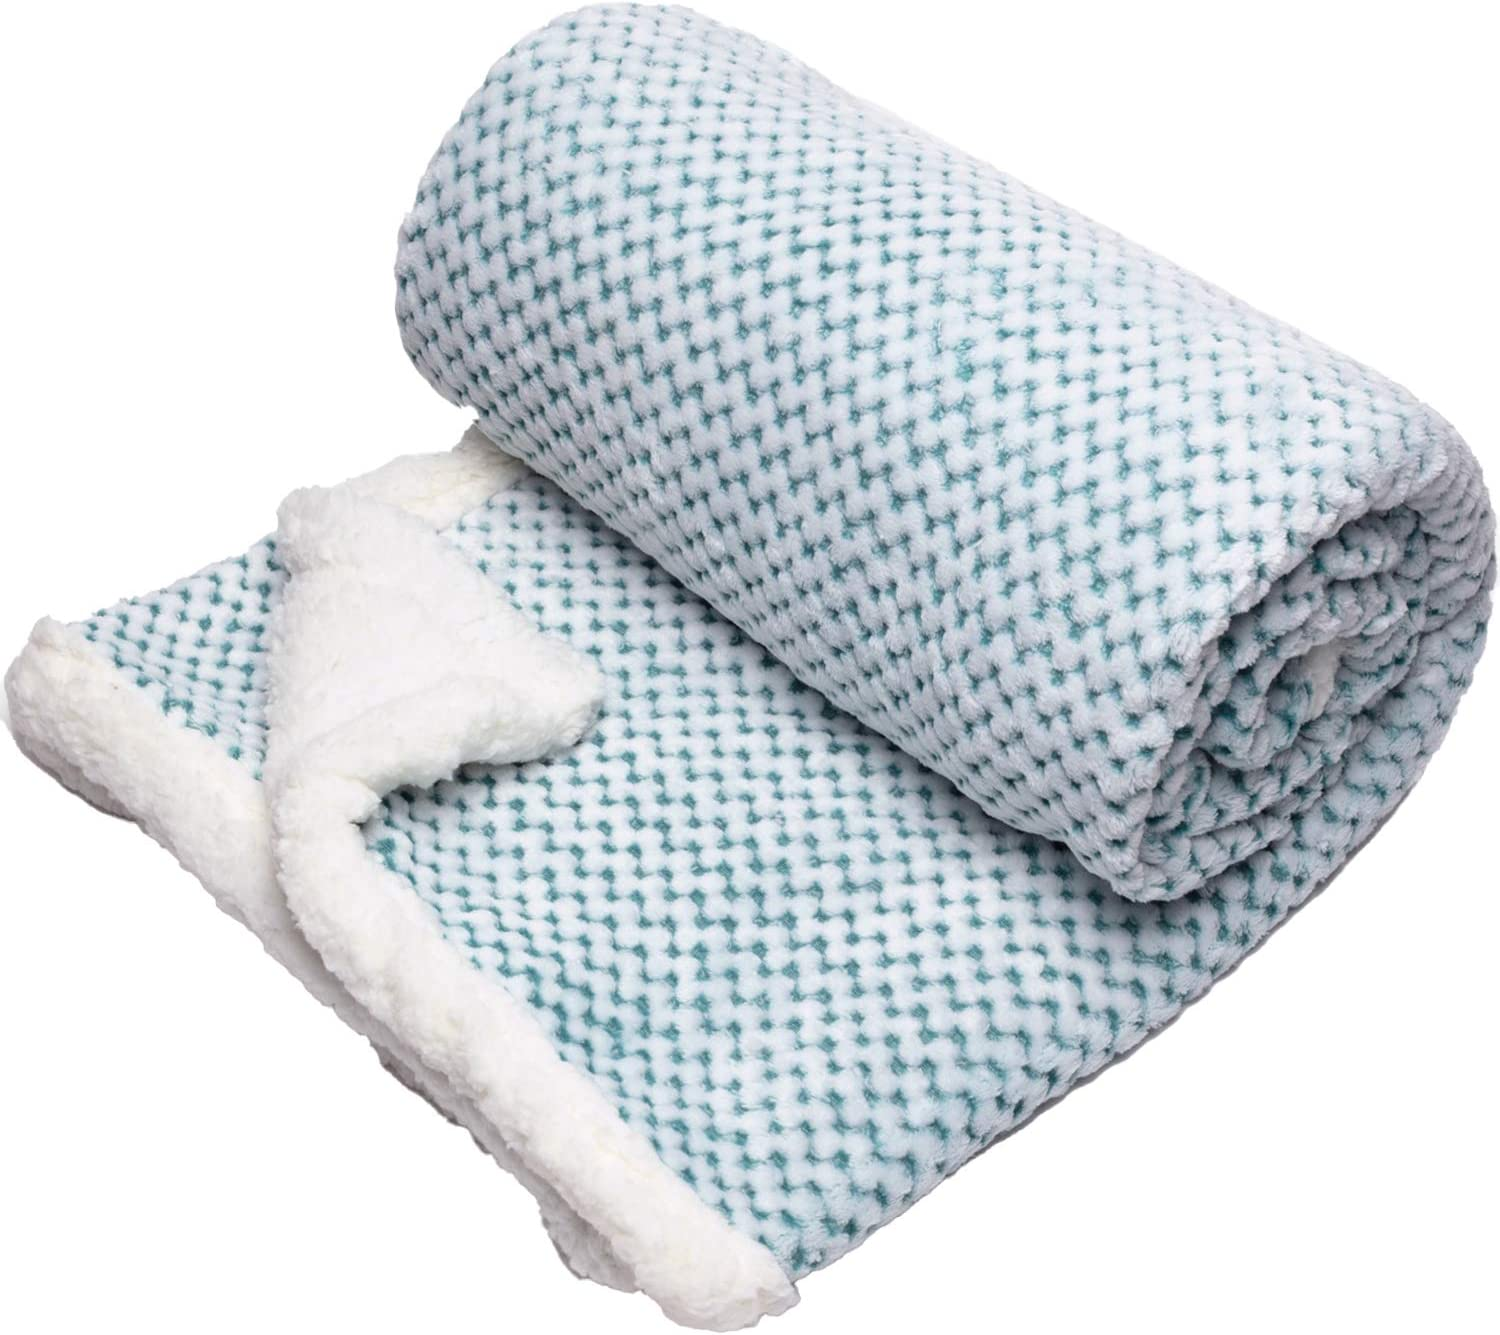 Simple Being Sherpa Fleece Soft Throw Blanket Luxury For Sofa Bed 50x65 Green Kitchen Dining